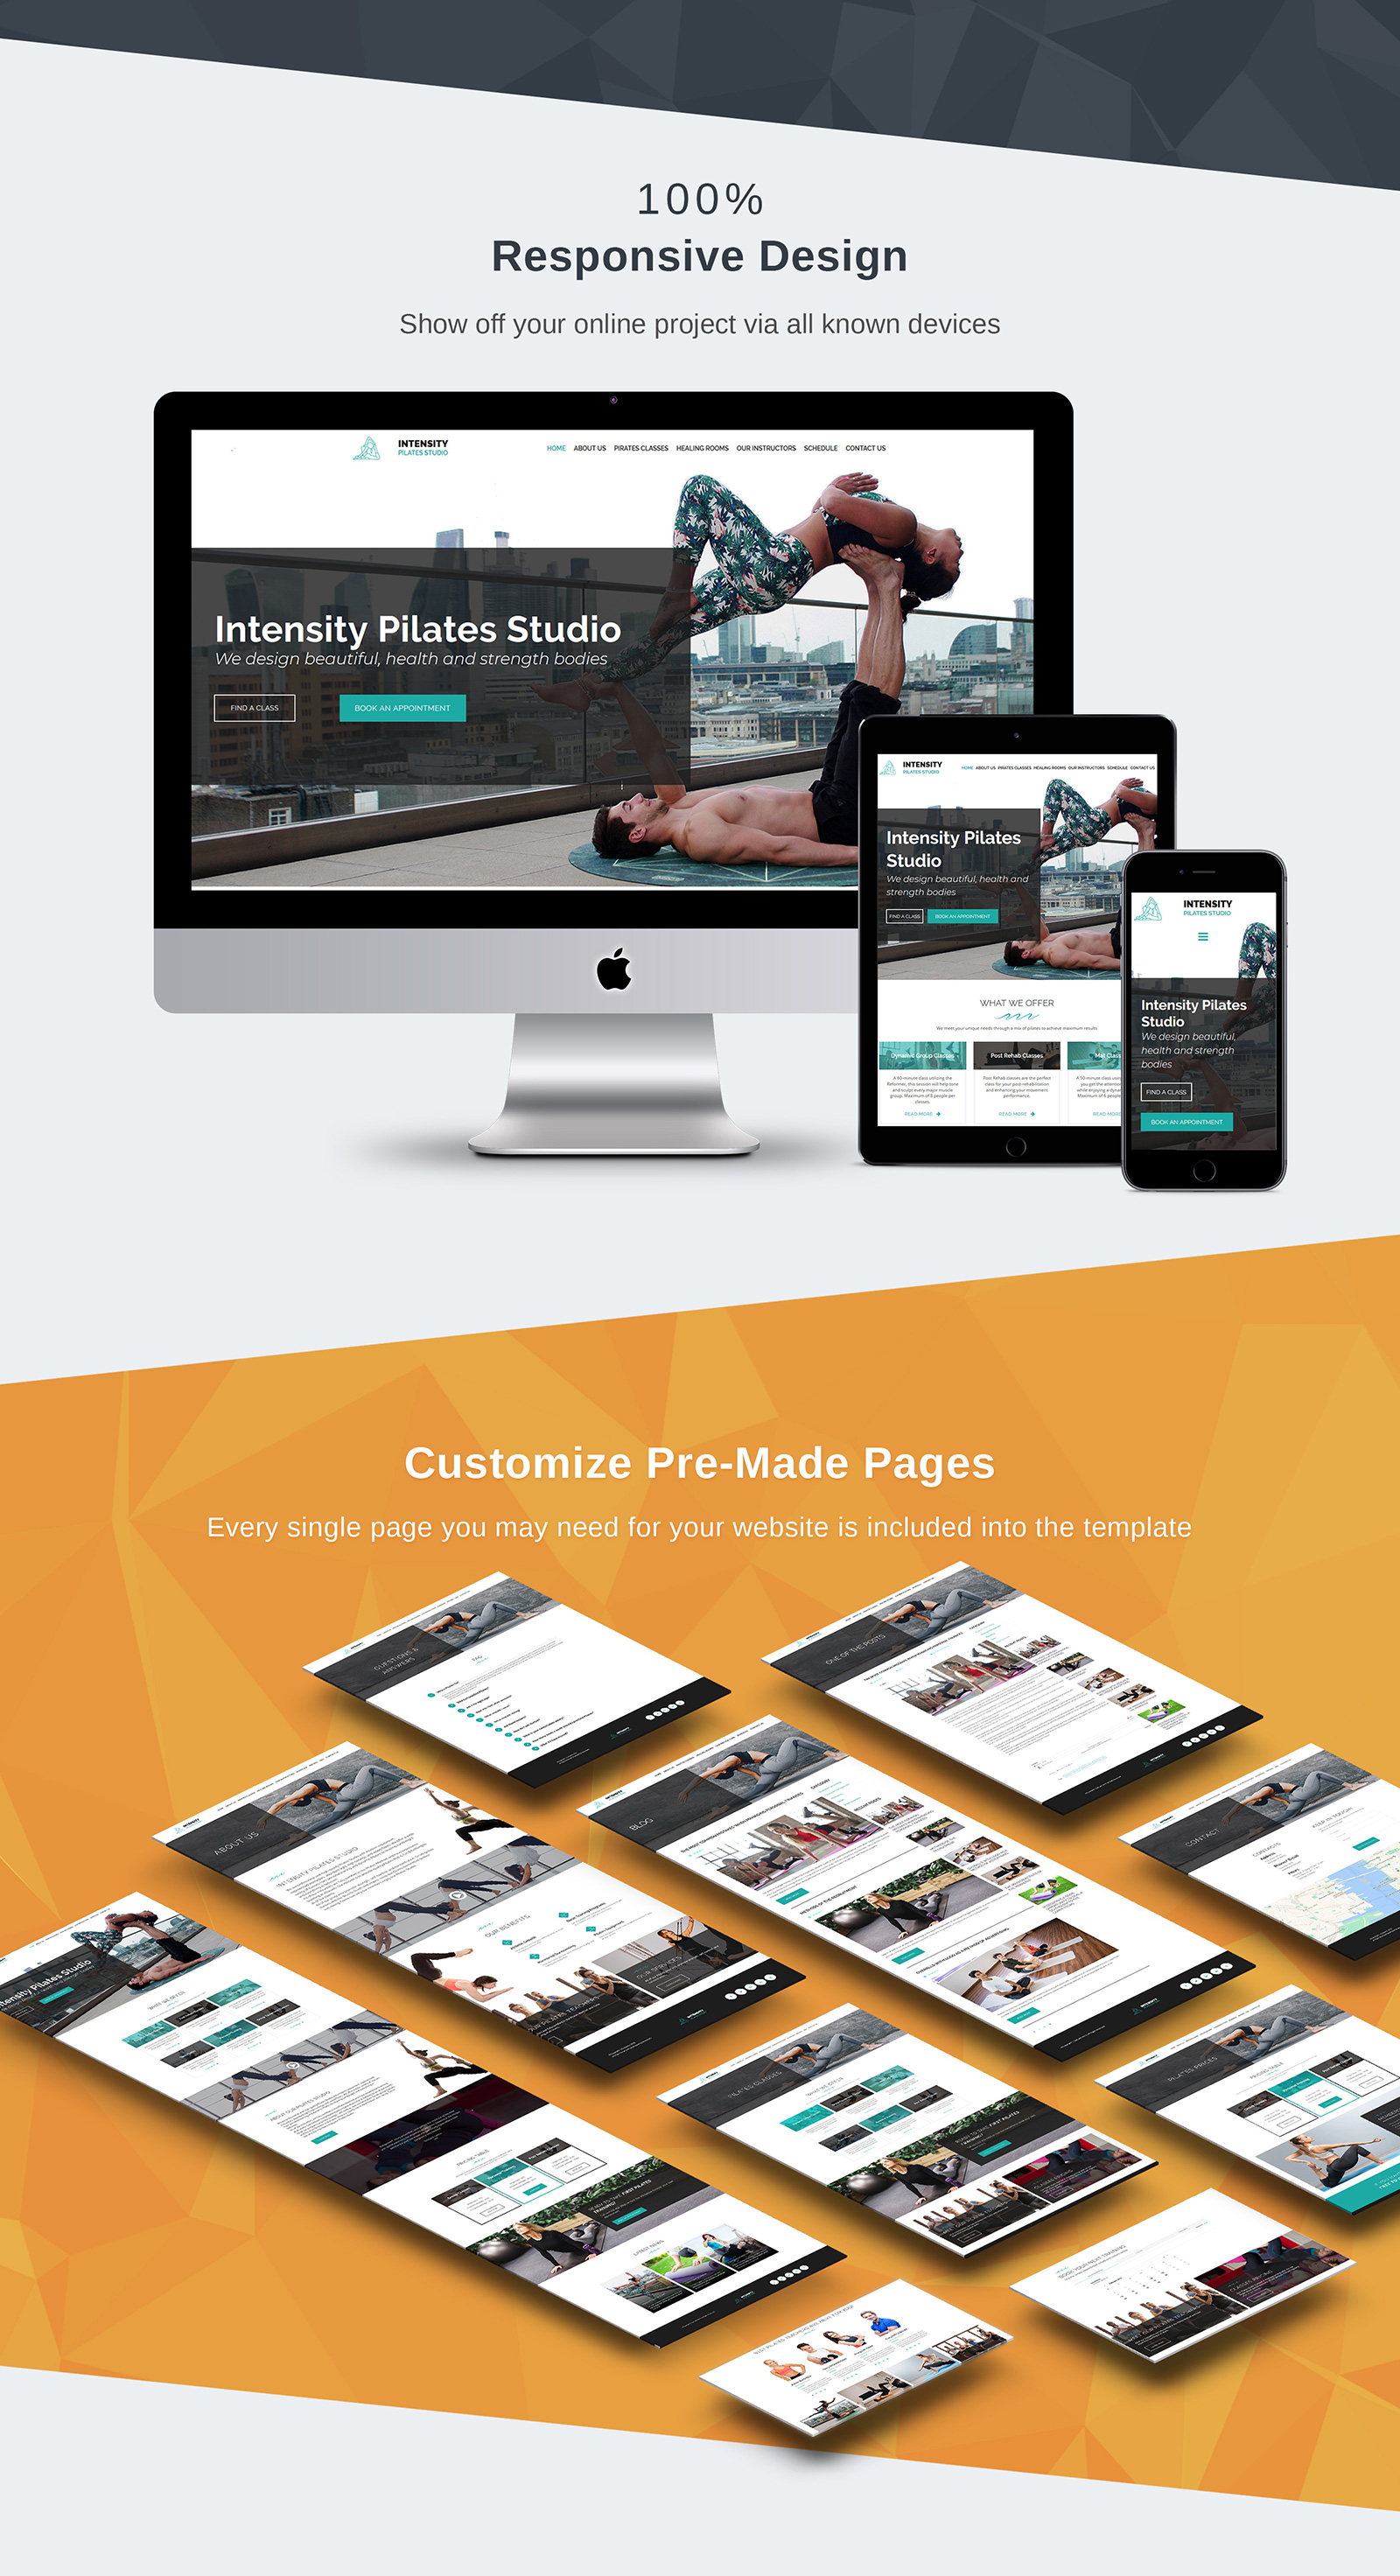 Intensity - Pilates Studio Moto CMS 3 Template